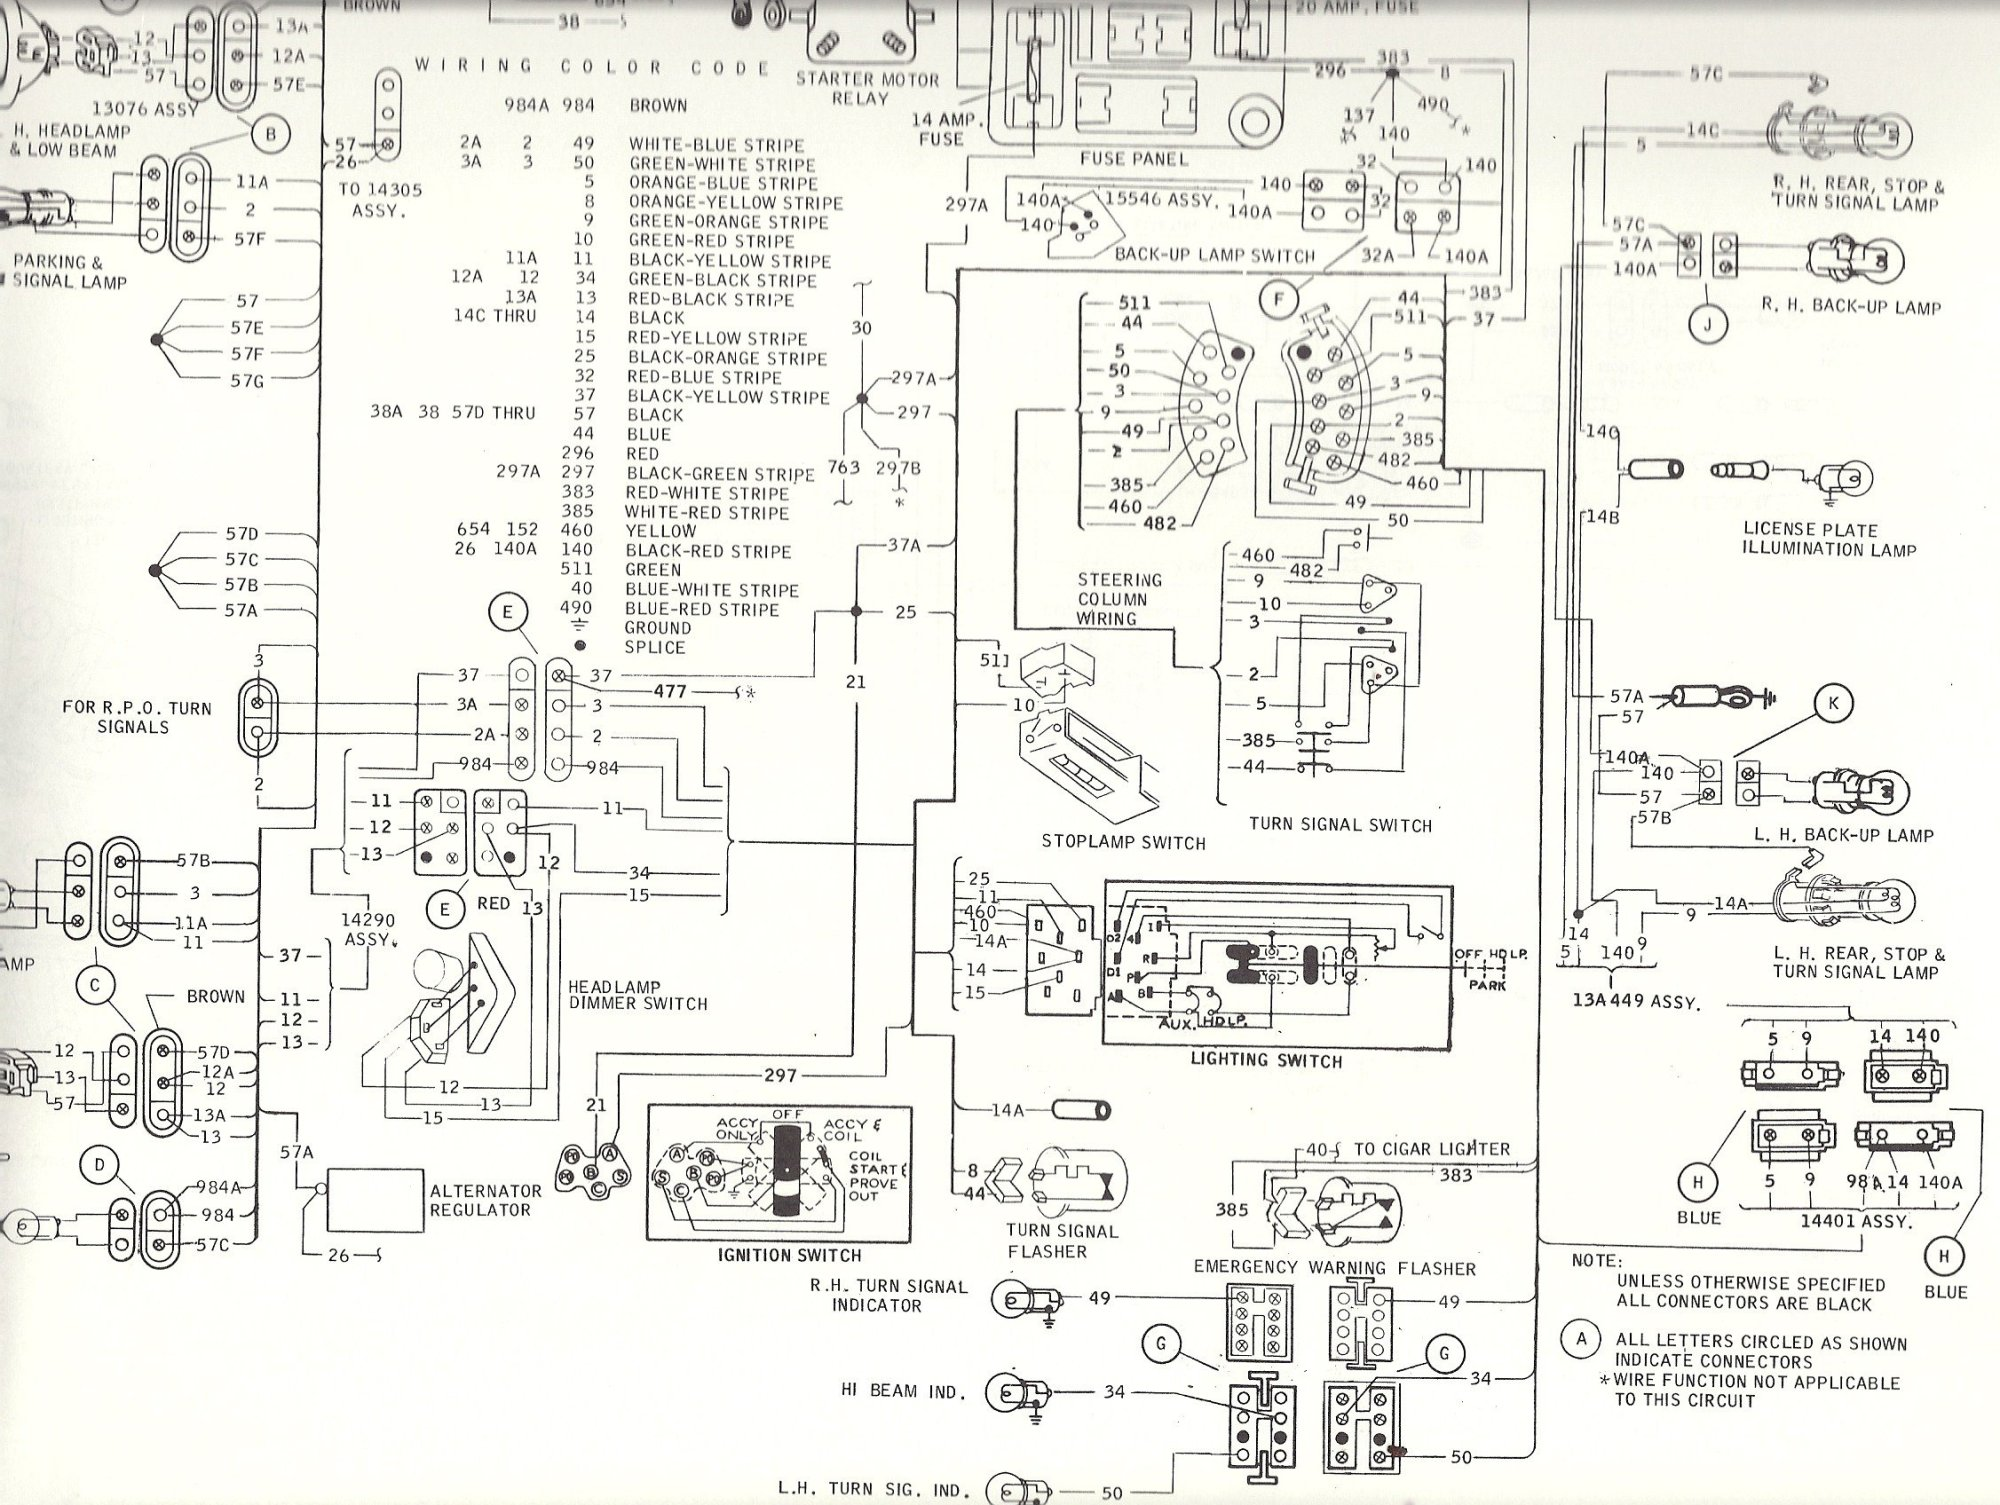 hight resolution of 1968 mustang wire diagram wiring diagram split1969 ford mustang wiring schematic and vacuum diagrams wiring 1968